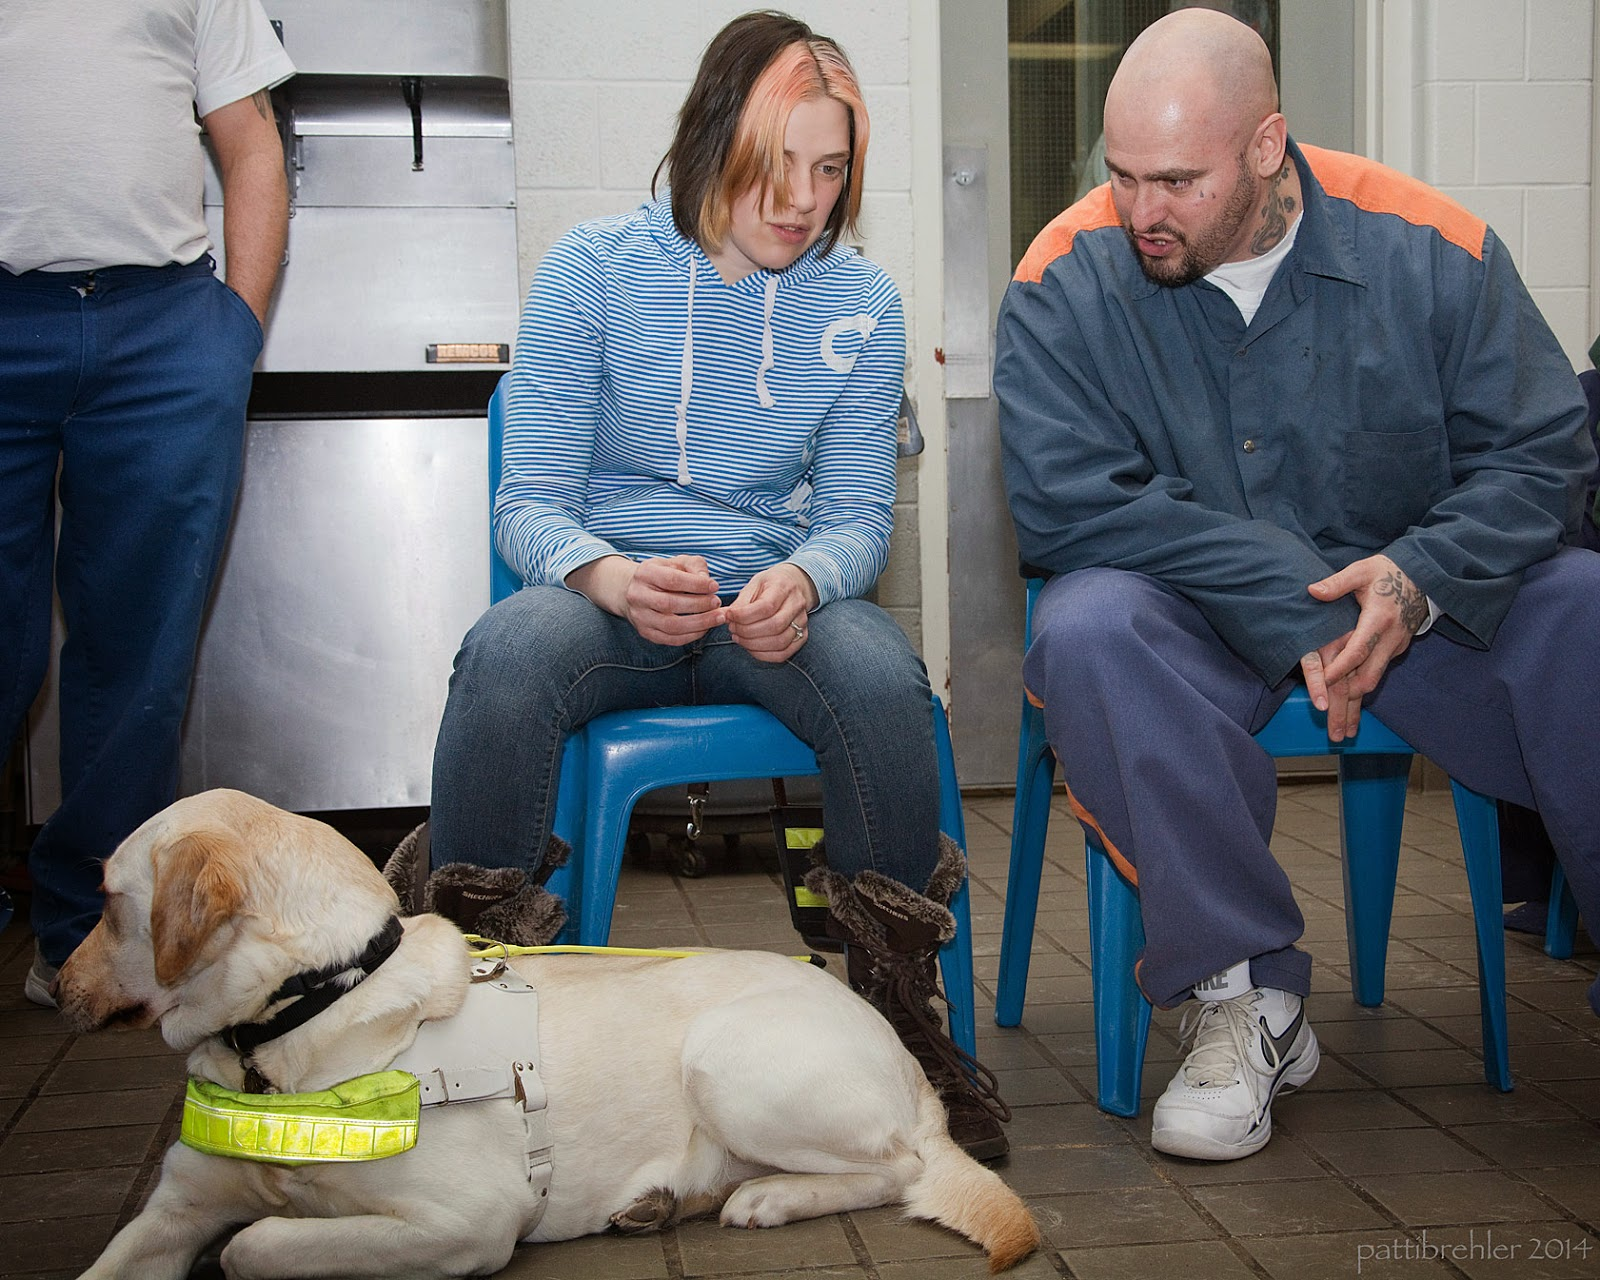 An adult yellow lab is lying on a light brown tile floor, facing to the left. She is wearing a neon yellow guide dog harness. A woman and a man are sitting on blue plastic chairs behind the dog. The woman, on the left, is wearing a long sleev blue and white striped shirt and blue jeans and furry winter boots. Her hair is brown and streaked with blonde in the front and is neck lenght. The man is wearing the blue and orange pirson uniform and white tennis shoes. He is bald and is leaning toward the woman in conversation. A man wearing a white t-shirt and blue pants is standing behine to the far left, mostly out of view.